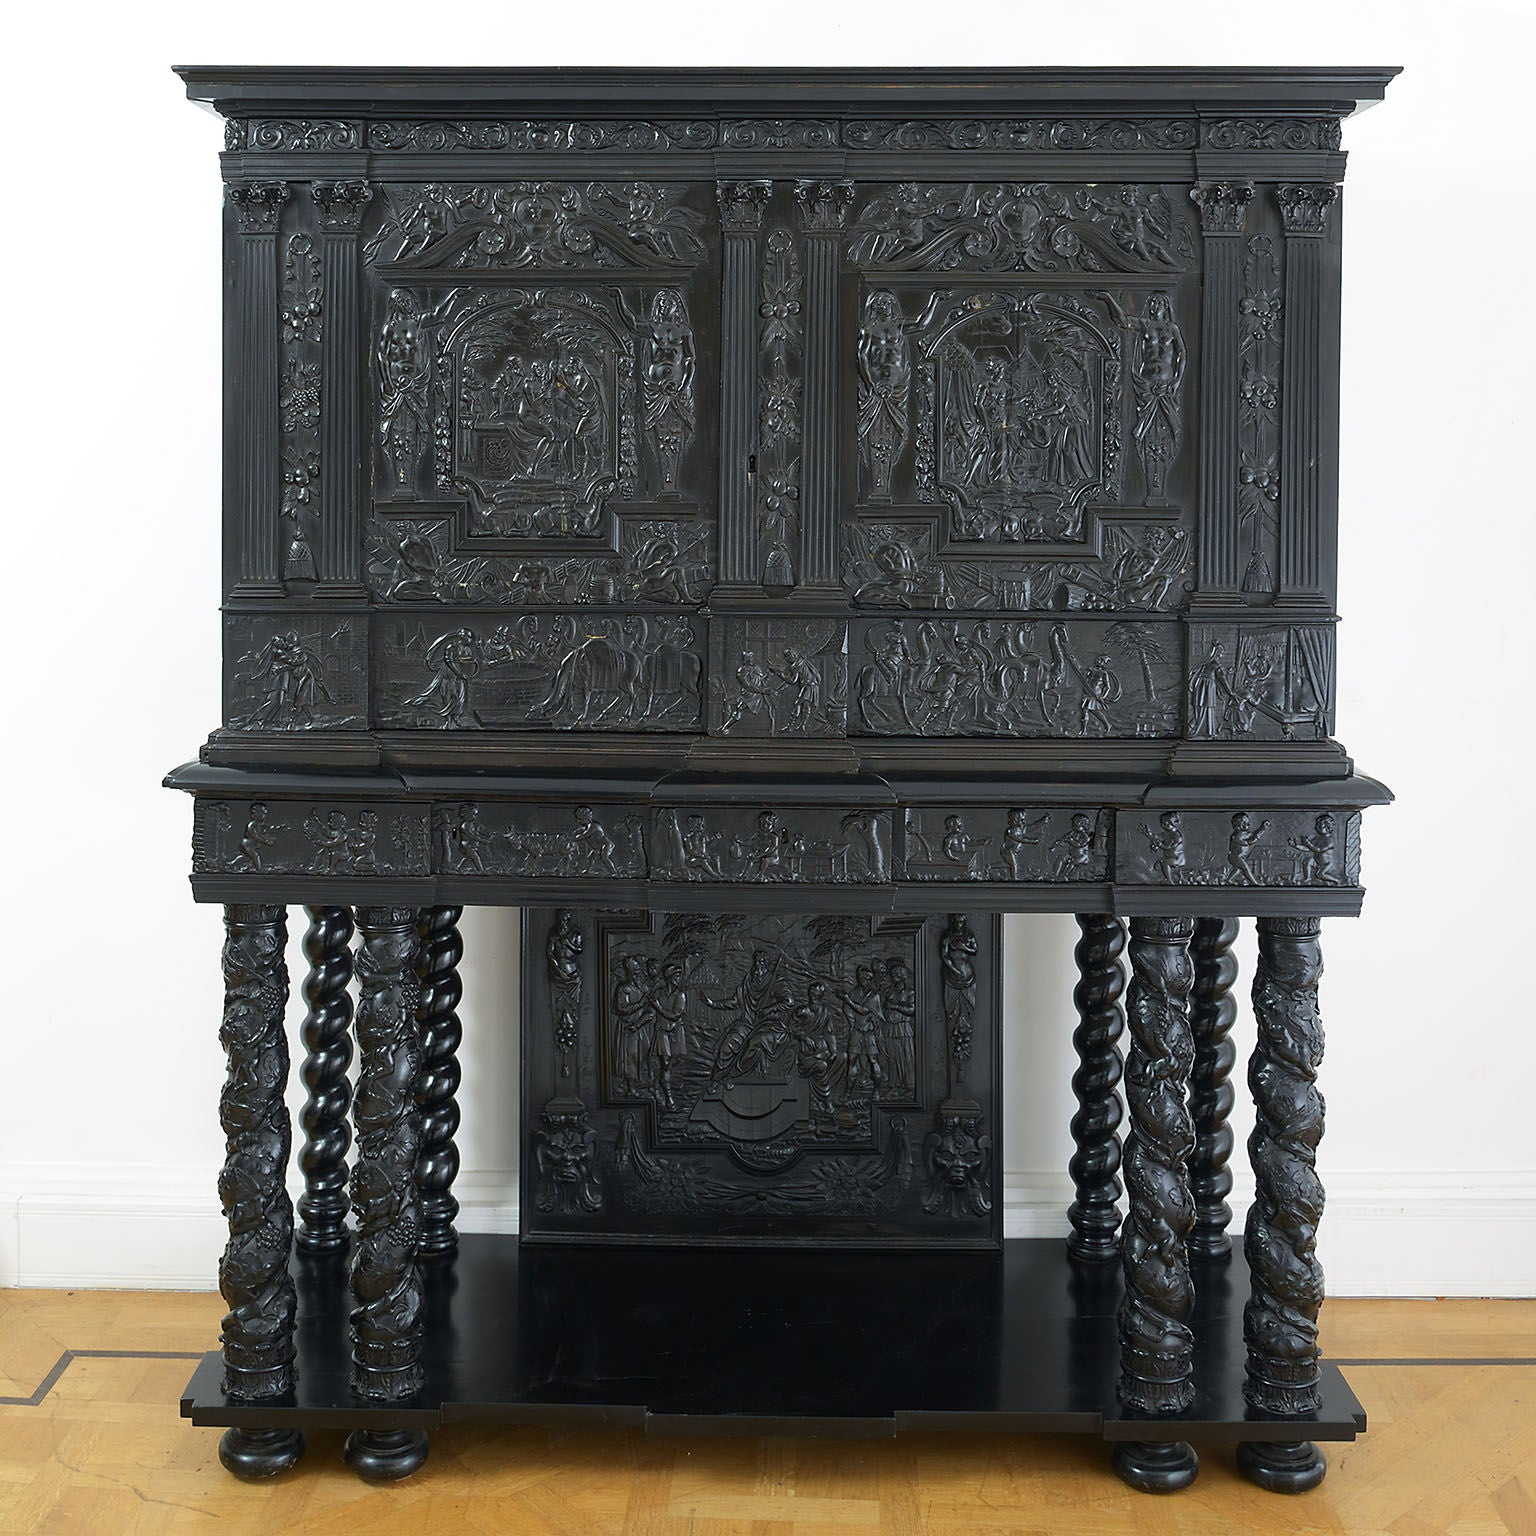 Louis XIV Carved Ebony, Fruitwood, Kingwood and Bone Inlaid Cabinet of Museum Interest